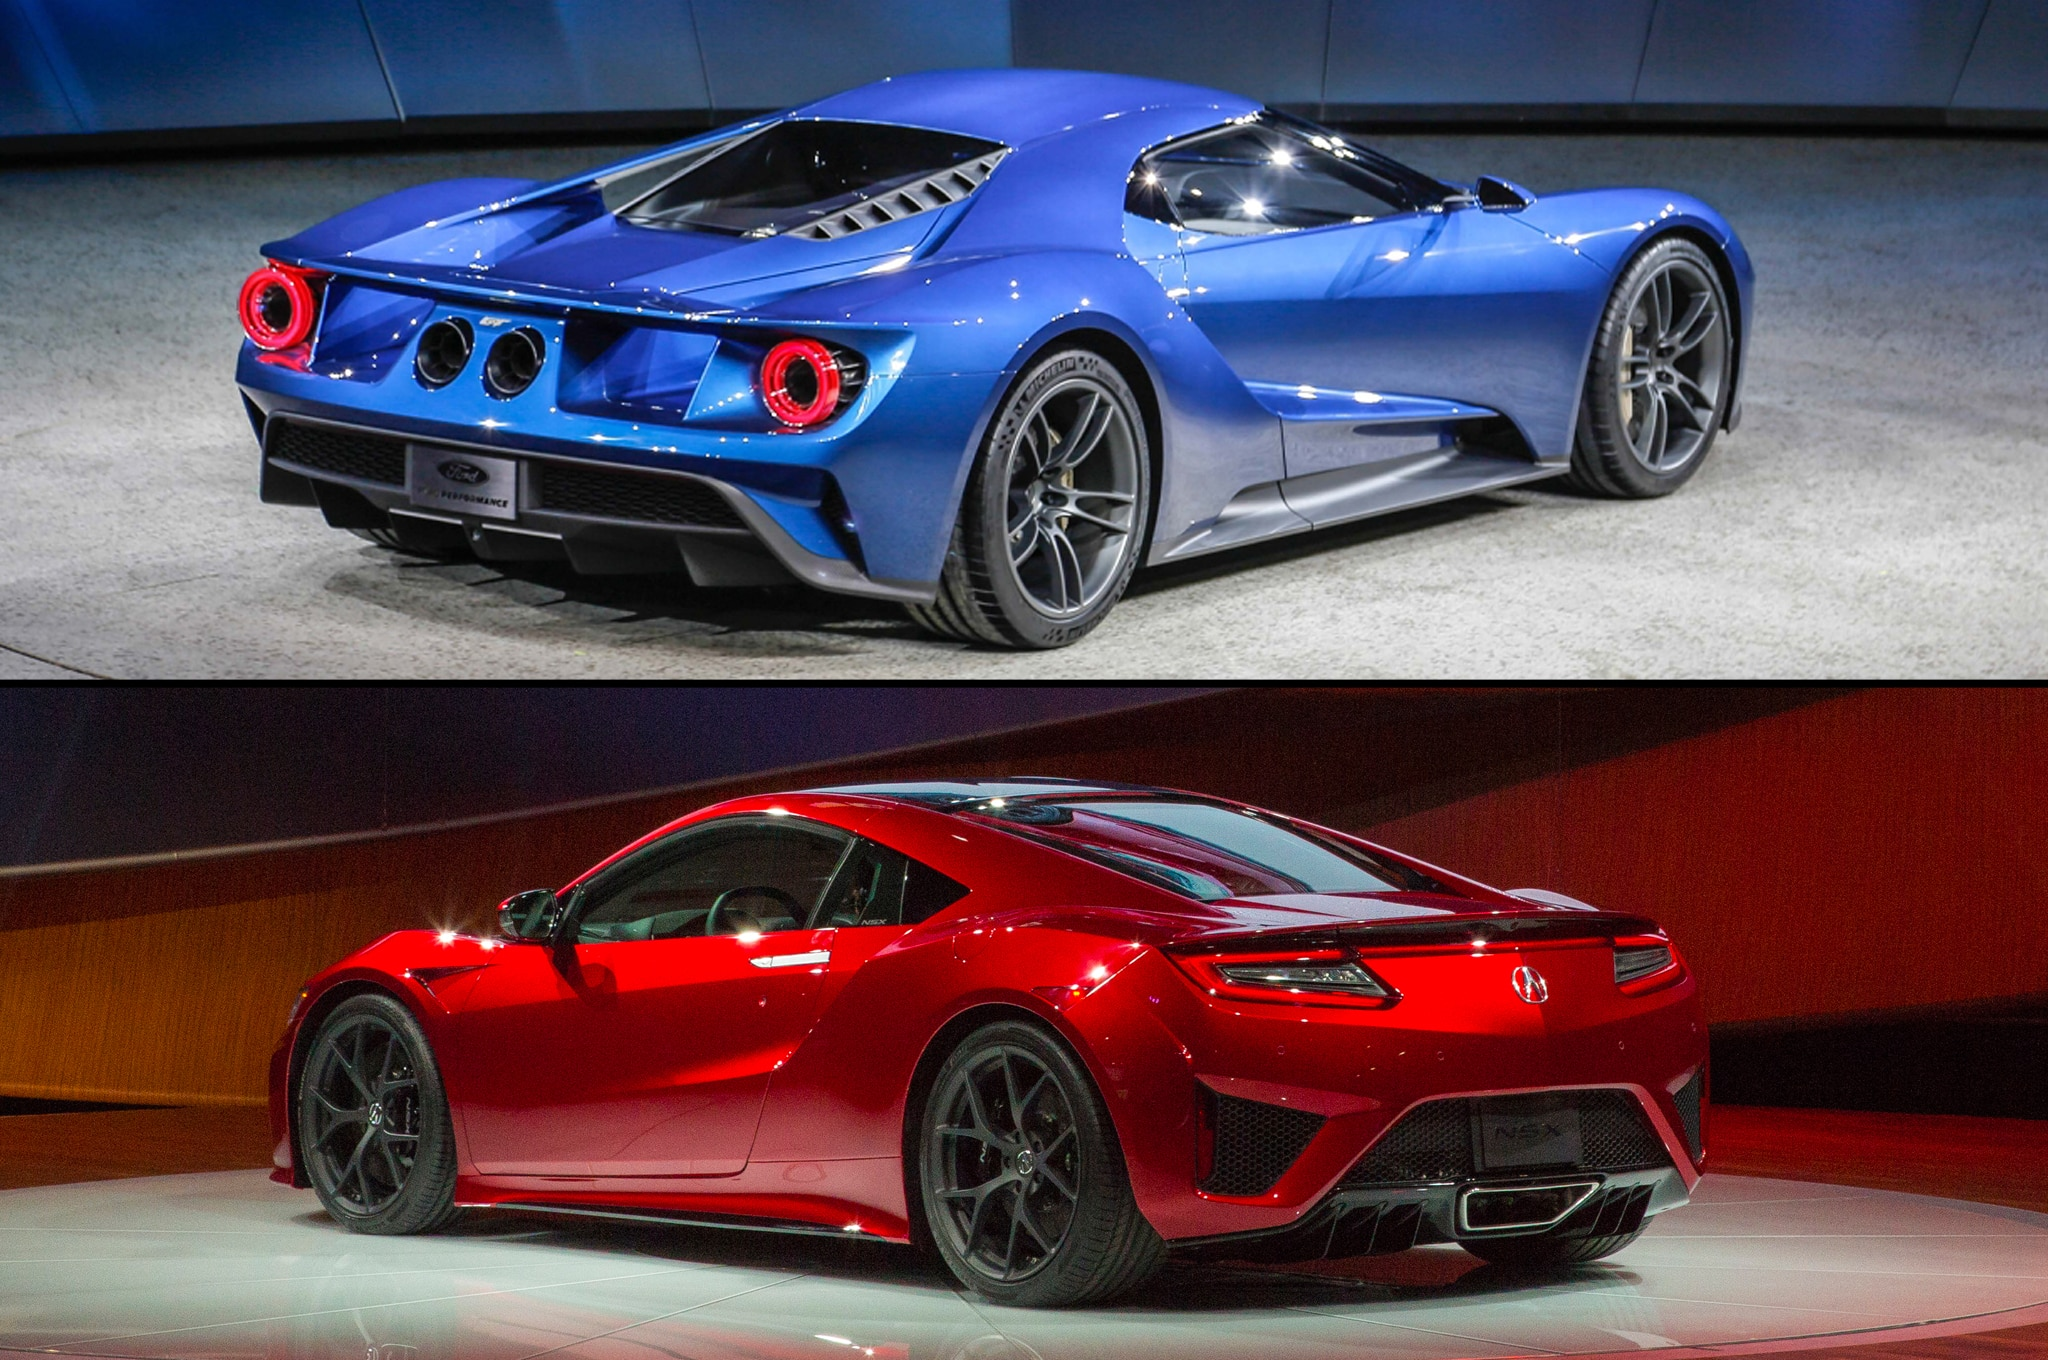 supercar face off ford gt vs acura nsx. Black Bedroom Furniture Sets. Home Design Ideas